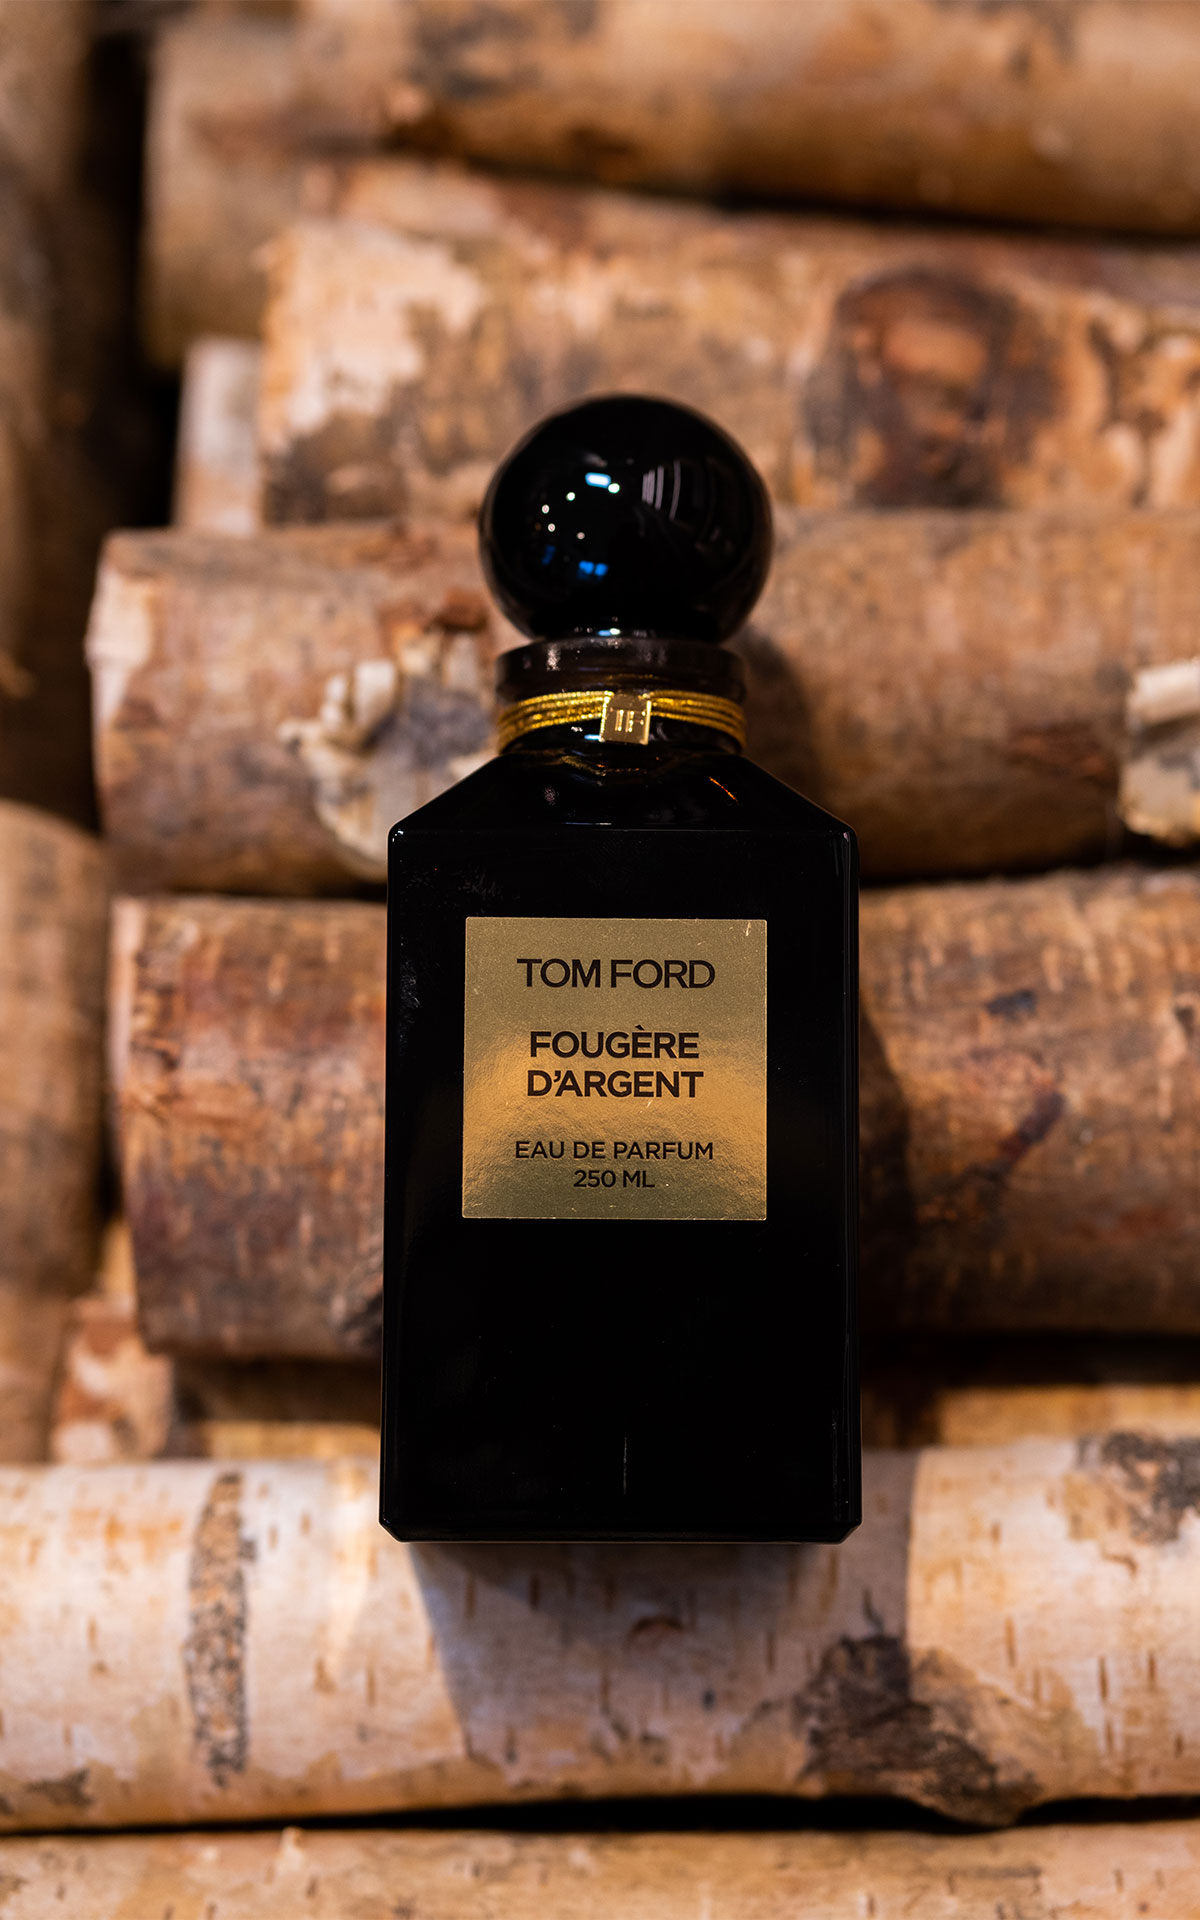 The Cosmetics Company Store Tom Ford Fougere d'argent eau de parfum 250ml from Bicester Village